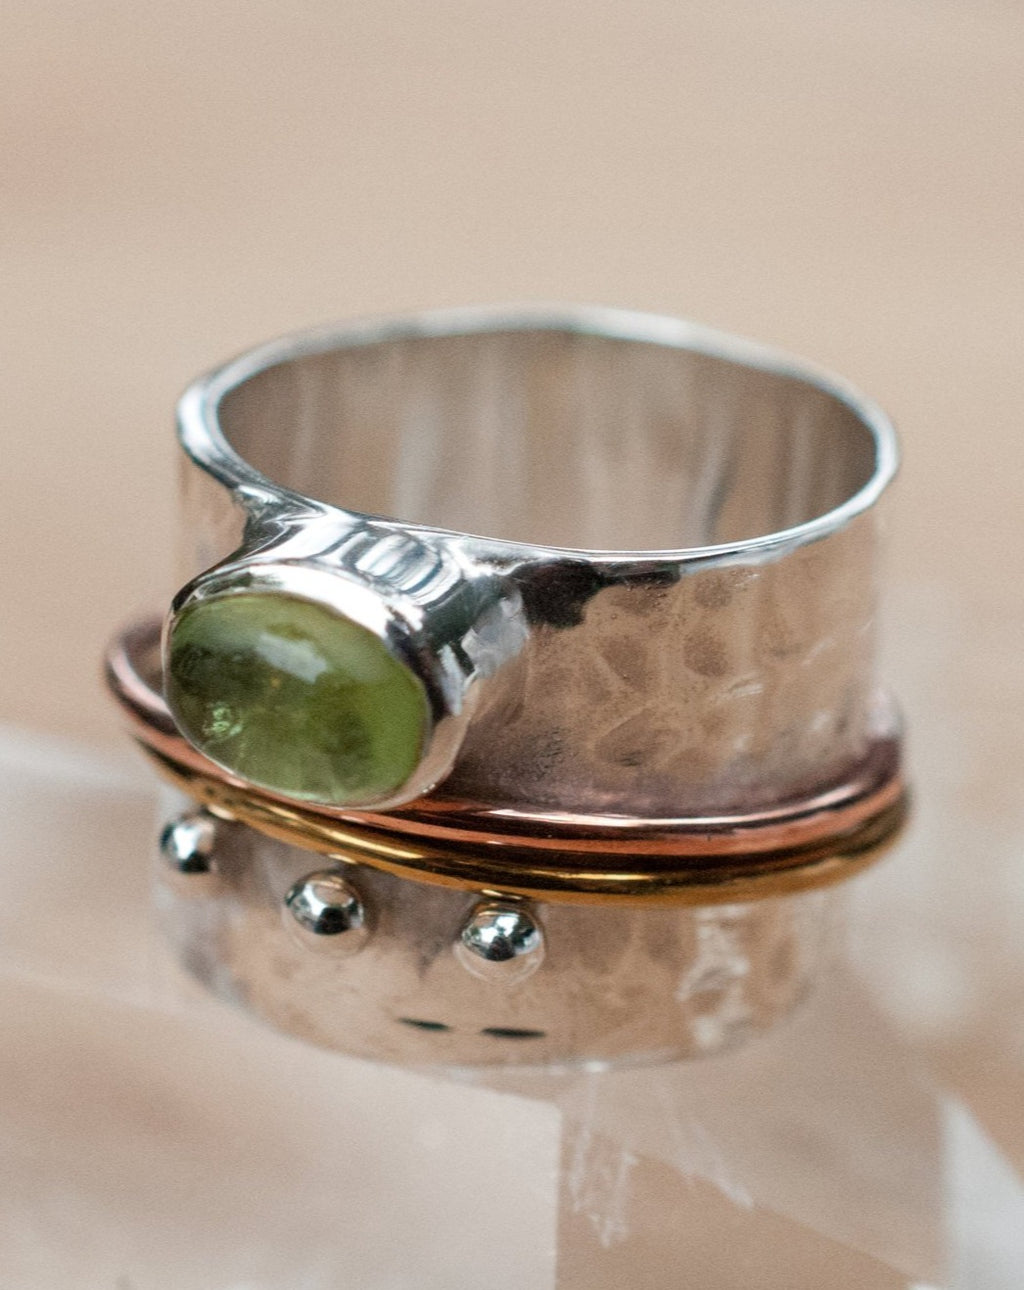 Peridot Spinner Ring * Meditation * Spinning * Spin * Anxiety * Sterling Silver 925 * boho* Bronze * Jewelry * Bycila *Handmade *Yoga BJS018